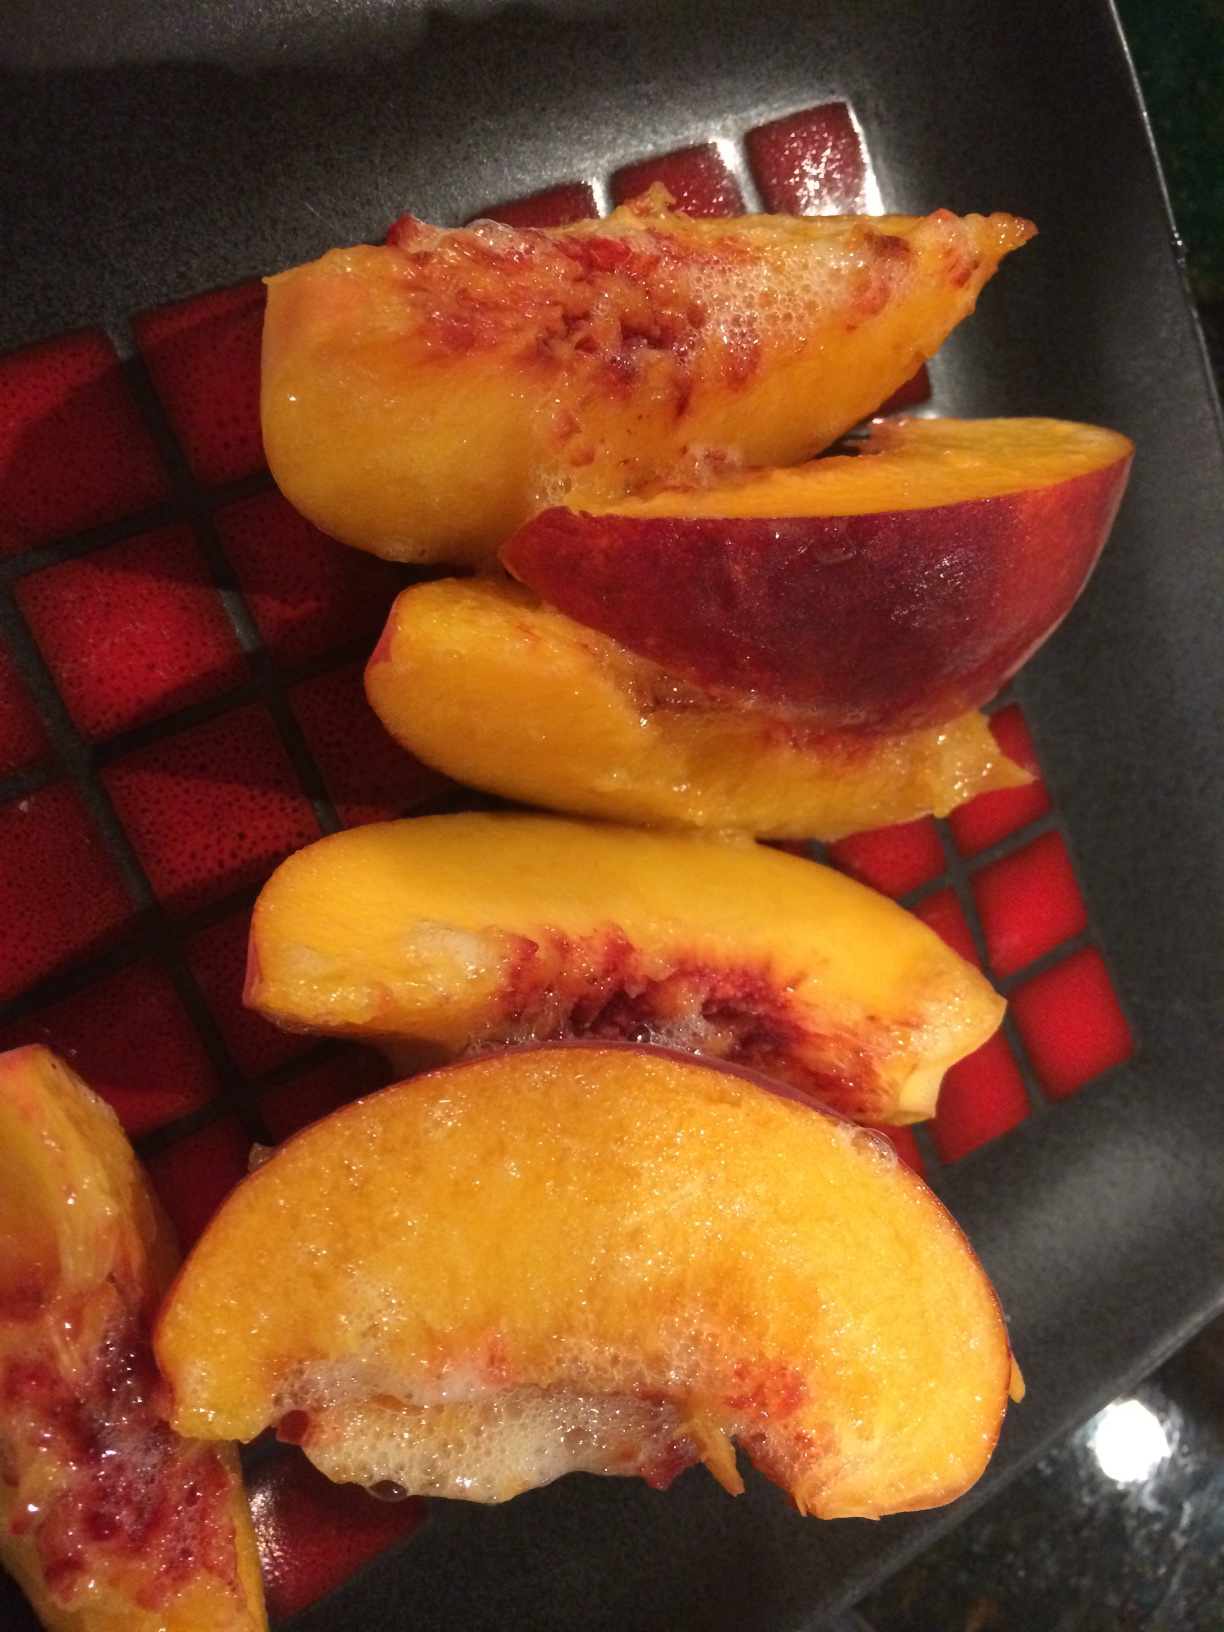 Fizzy peaches are especially good!